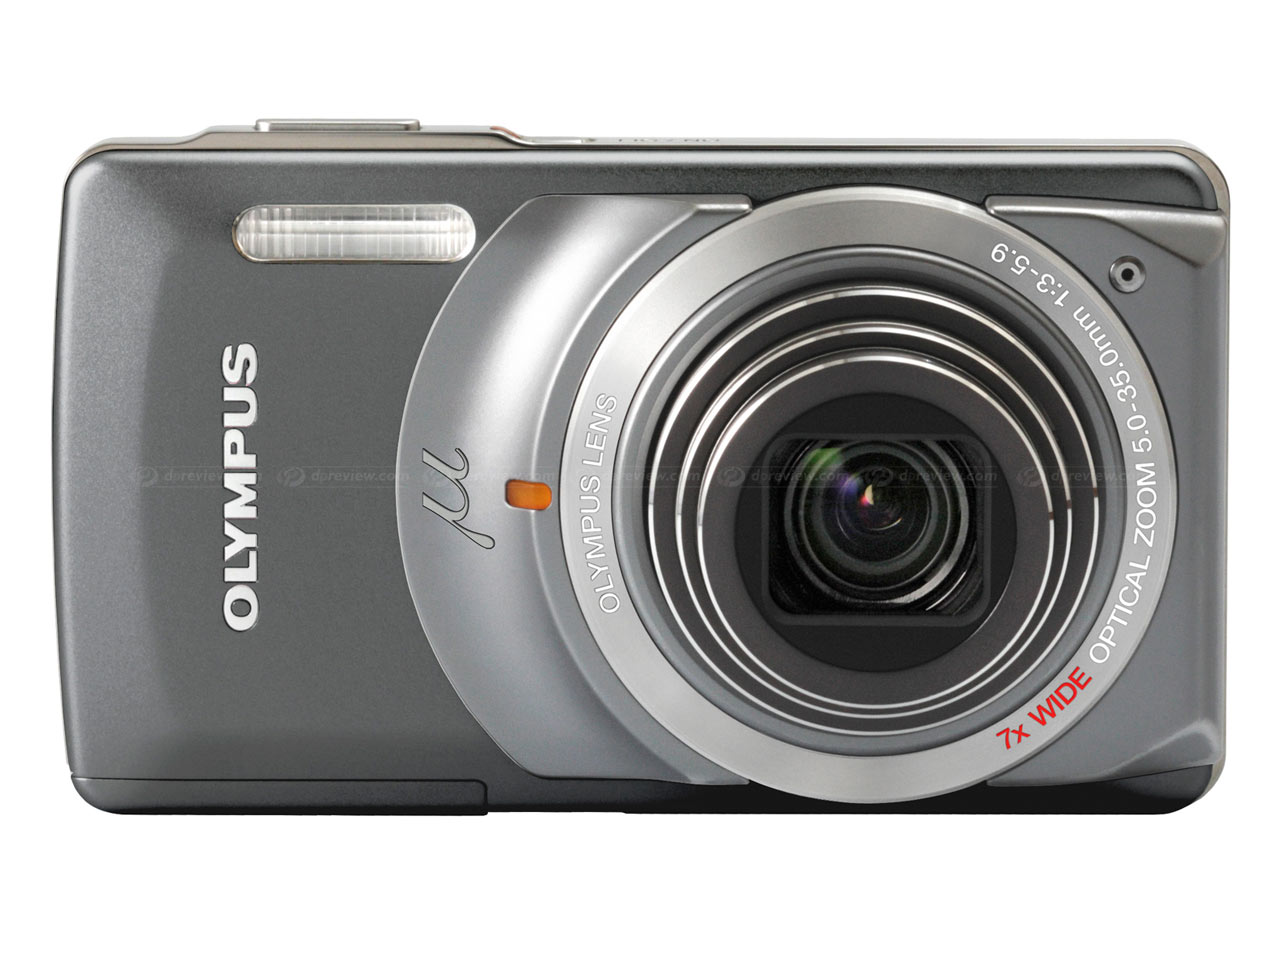 olympus releases stylus 7010 digital compact digital photography review rh dpreview com Olympus Stylus Manual PDF Olympus Stylus Manual PDF